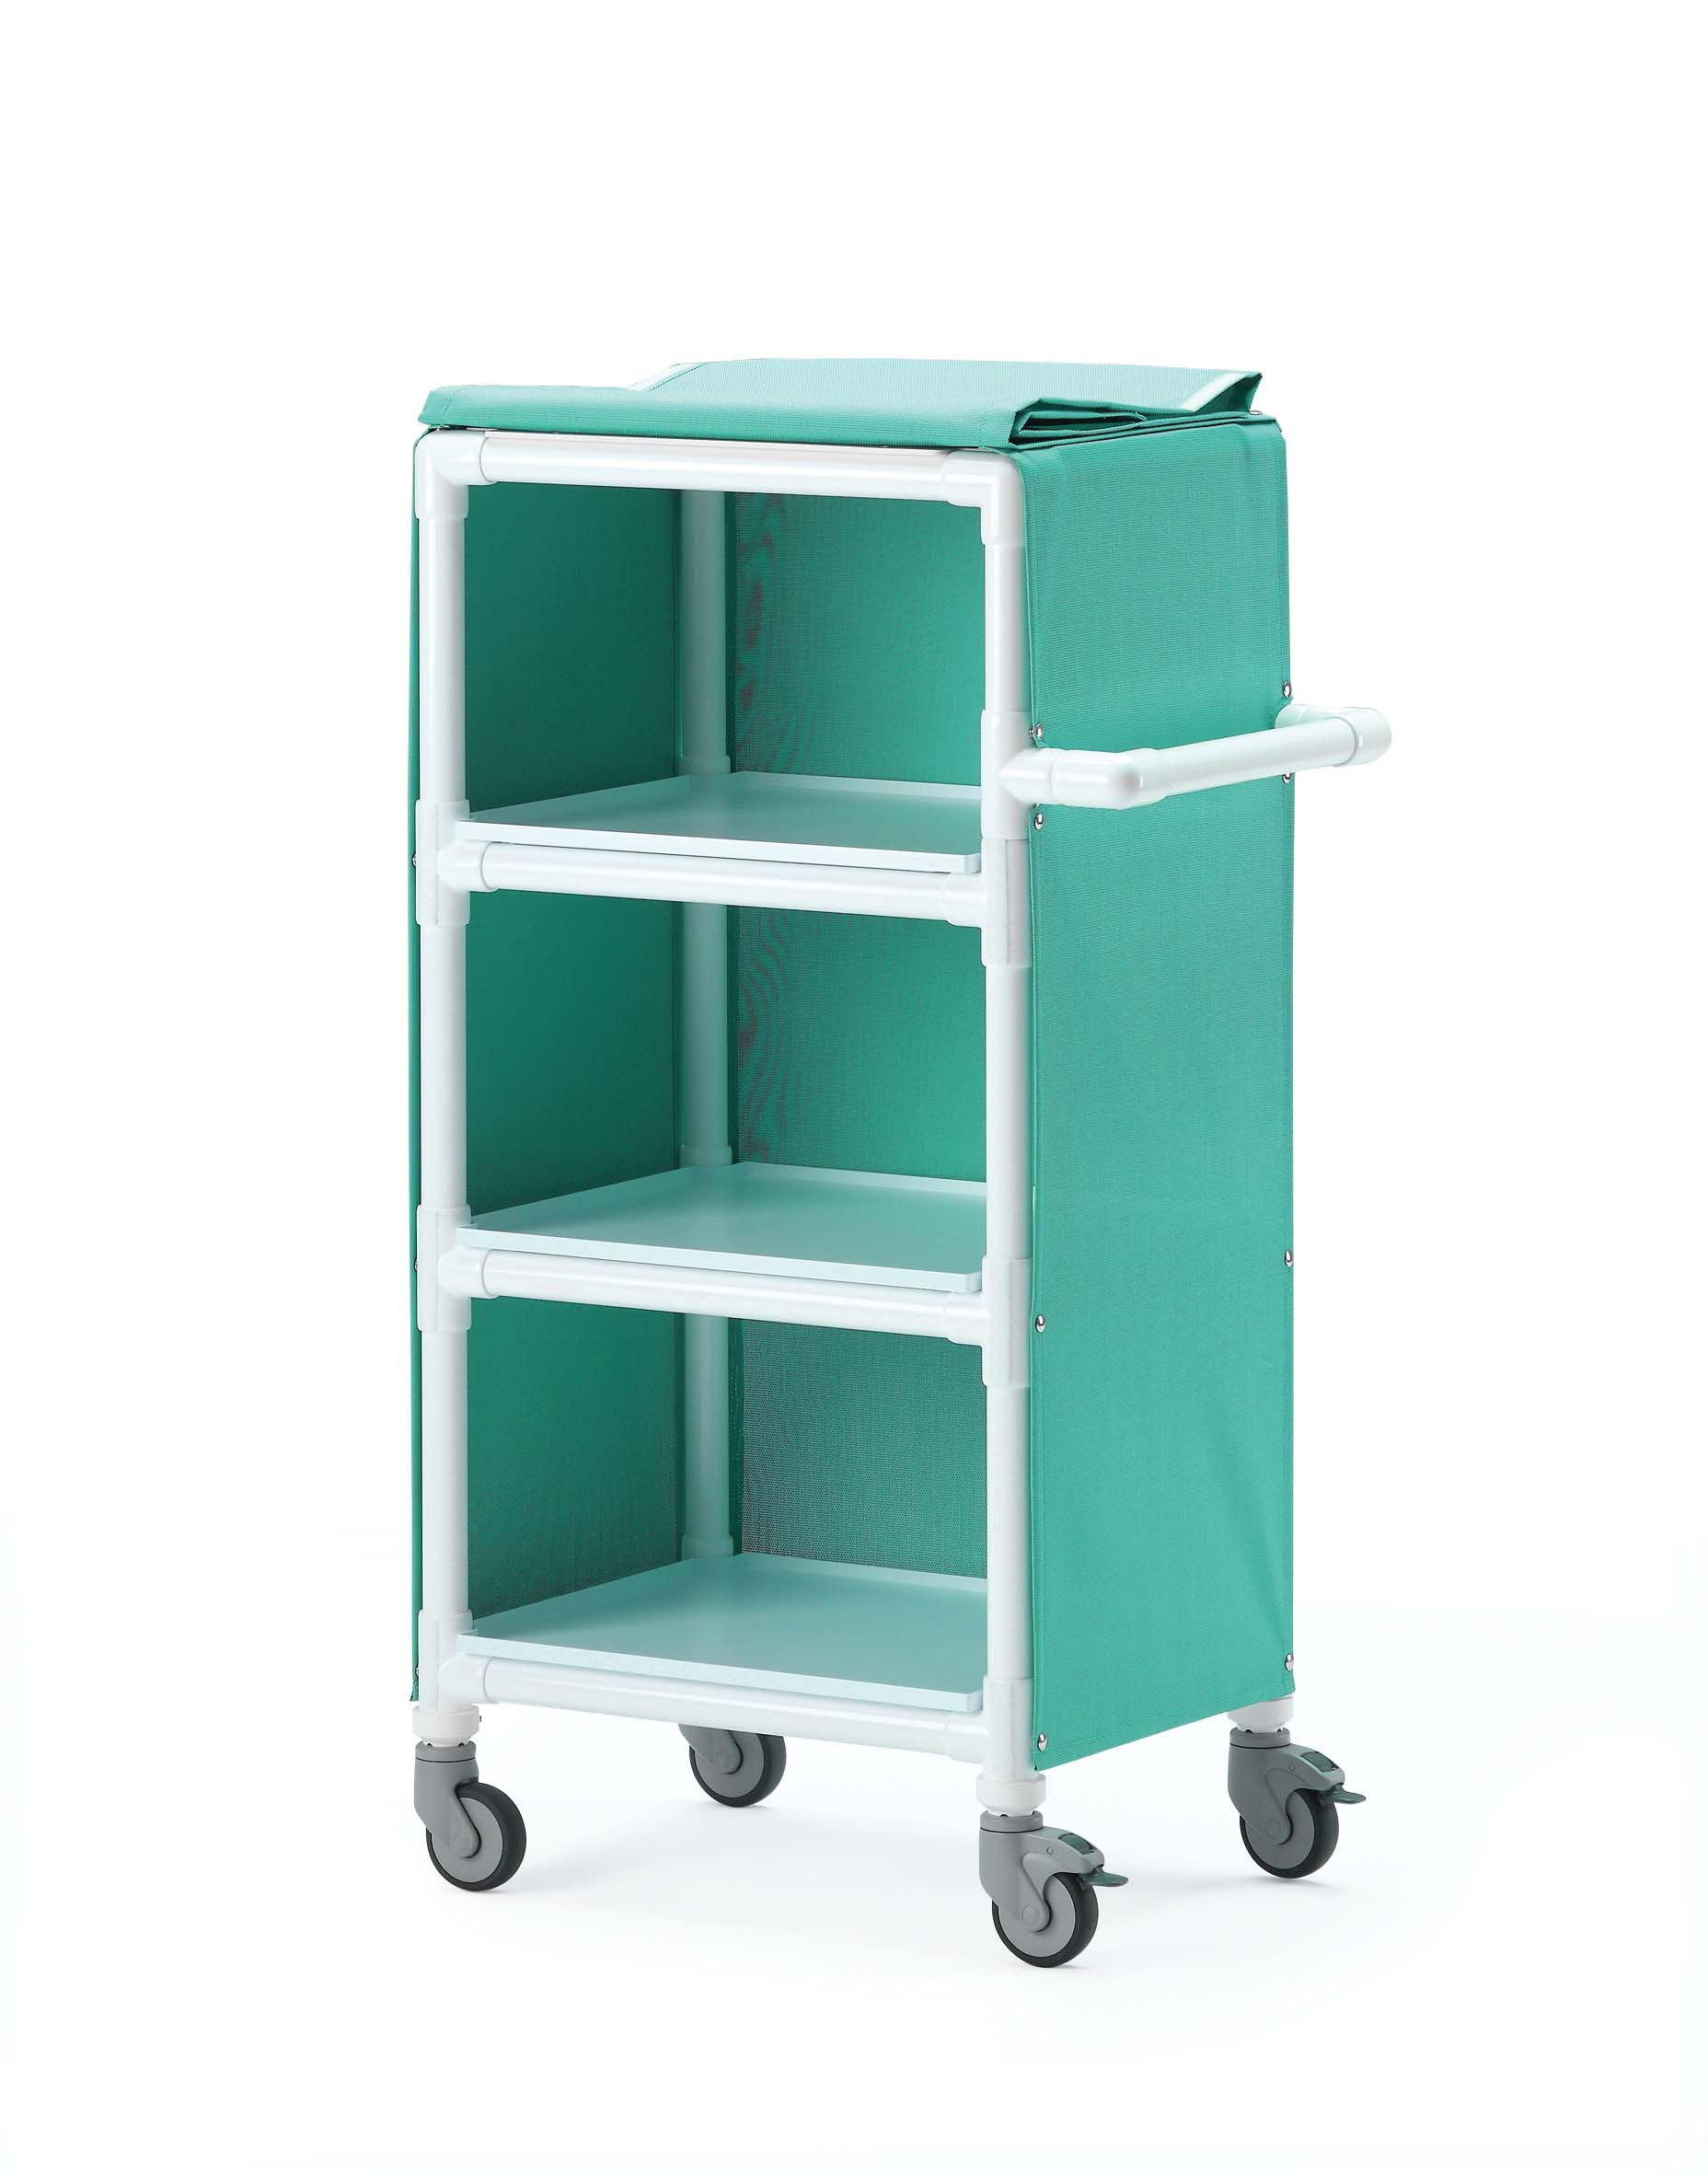 Linen Clean Distribution Cart with Green Canvas Covers | Medical Supermarket